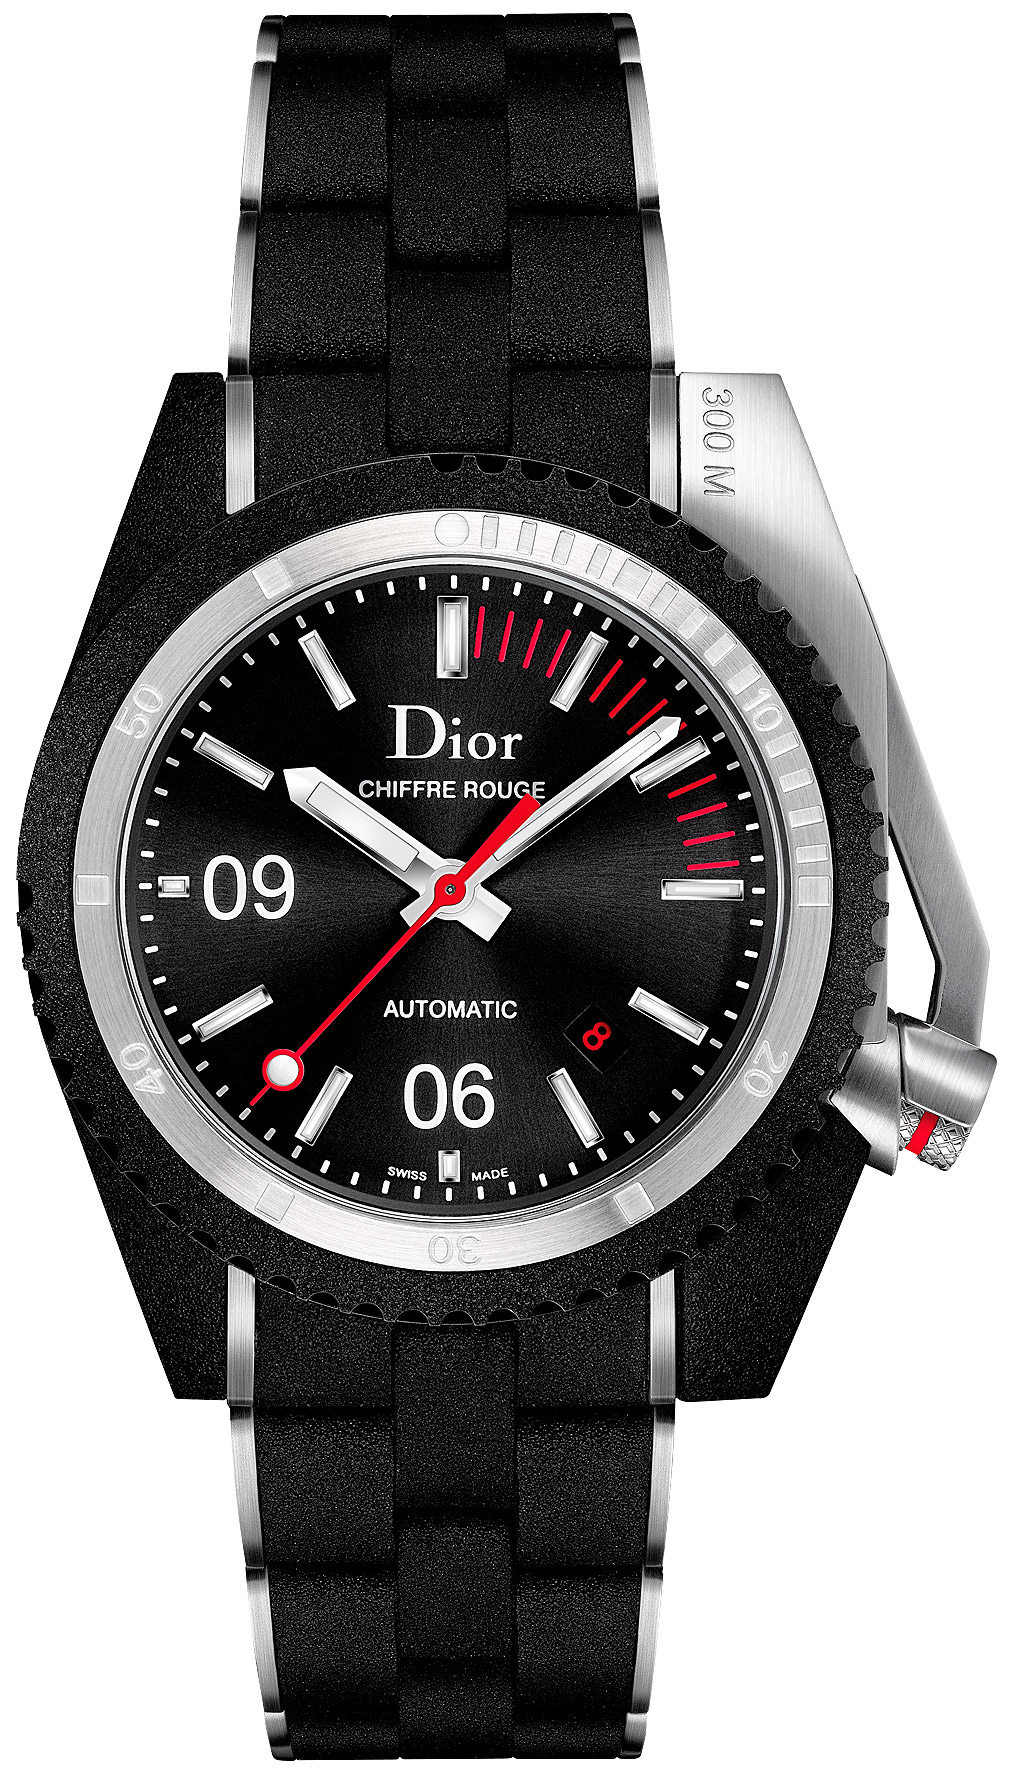 Christian dior chiffre rouge diving men 39 s watch model cd085540r001 for Christian dior watches